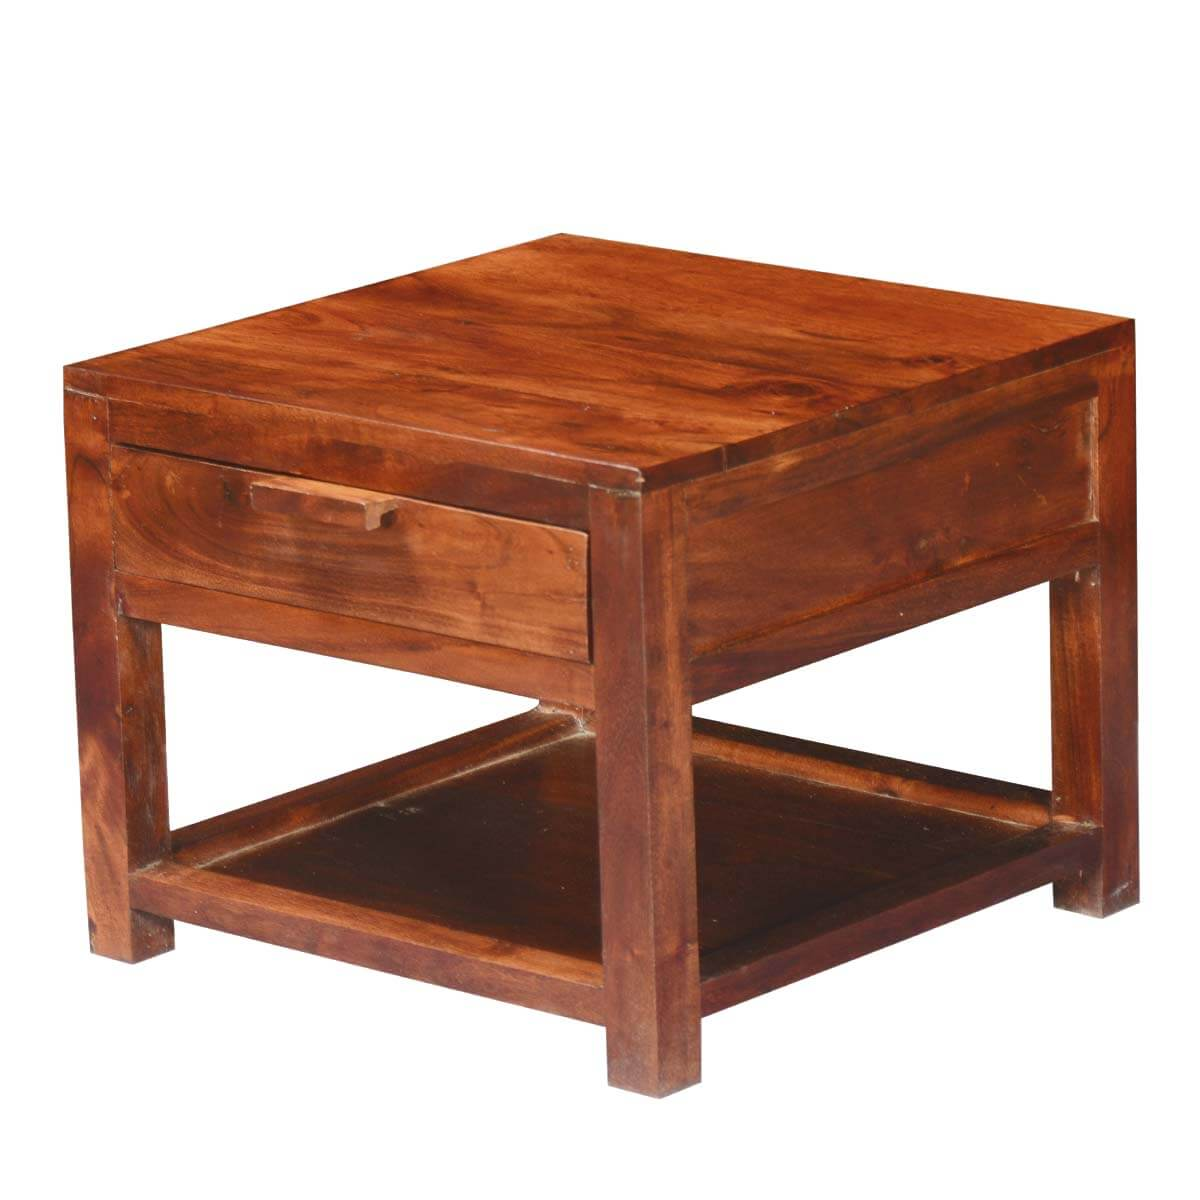 Rustic Simplicity Acacia Wood Square 2 Tier Small Side Table w Drawer